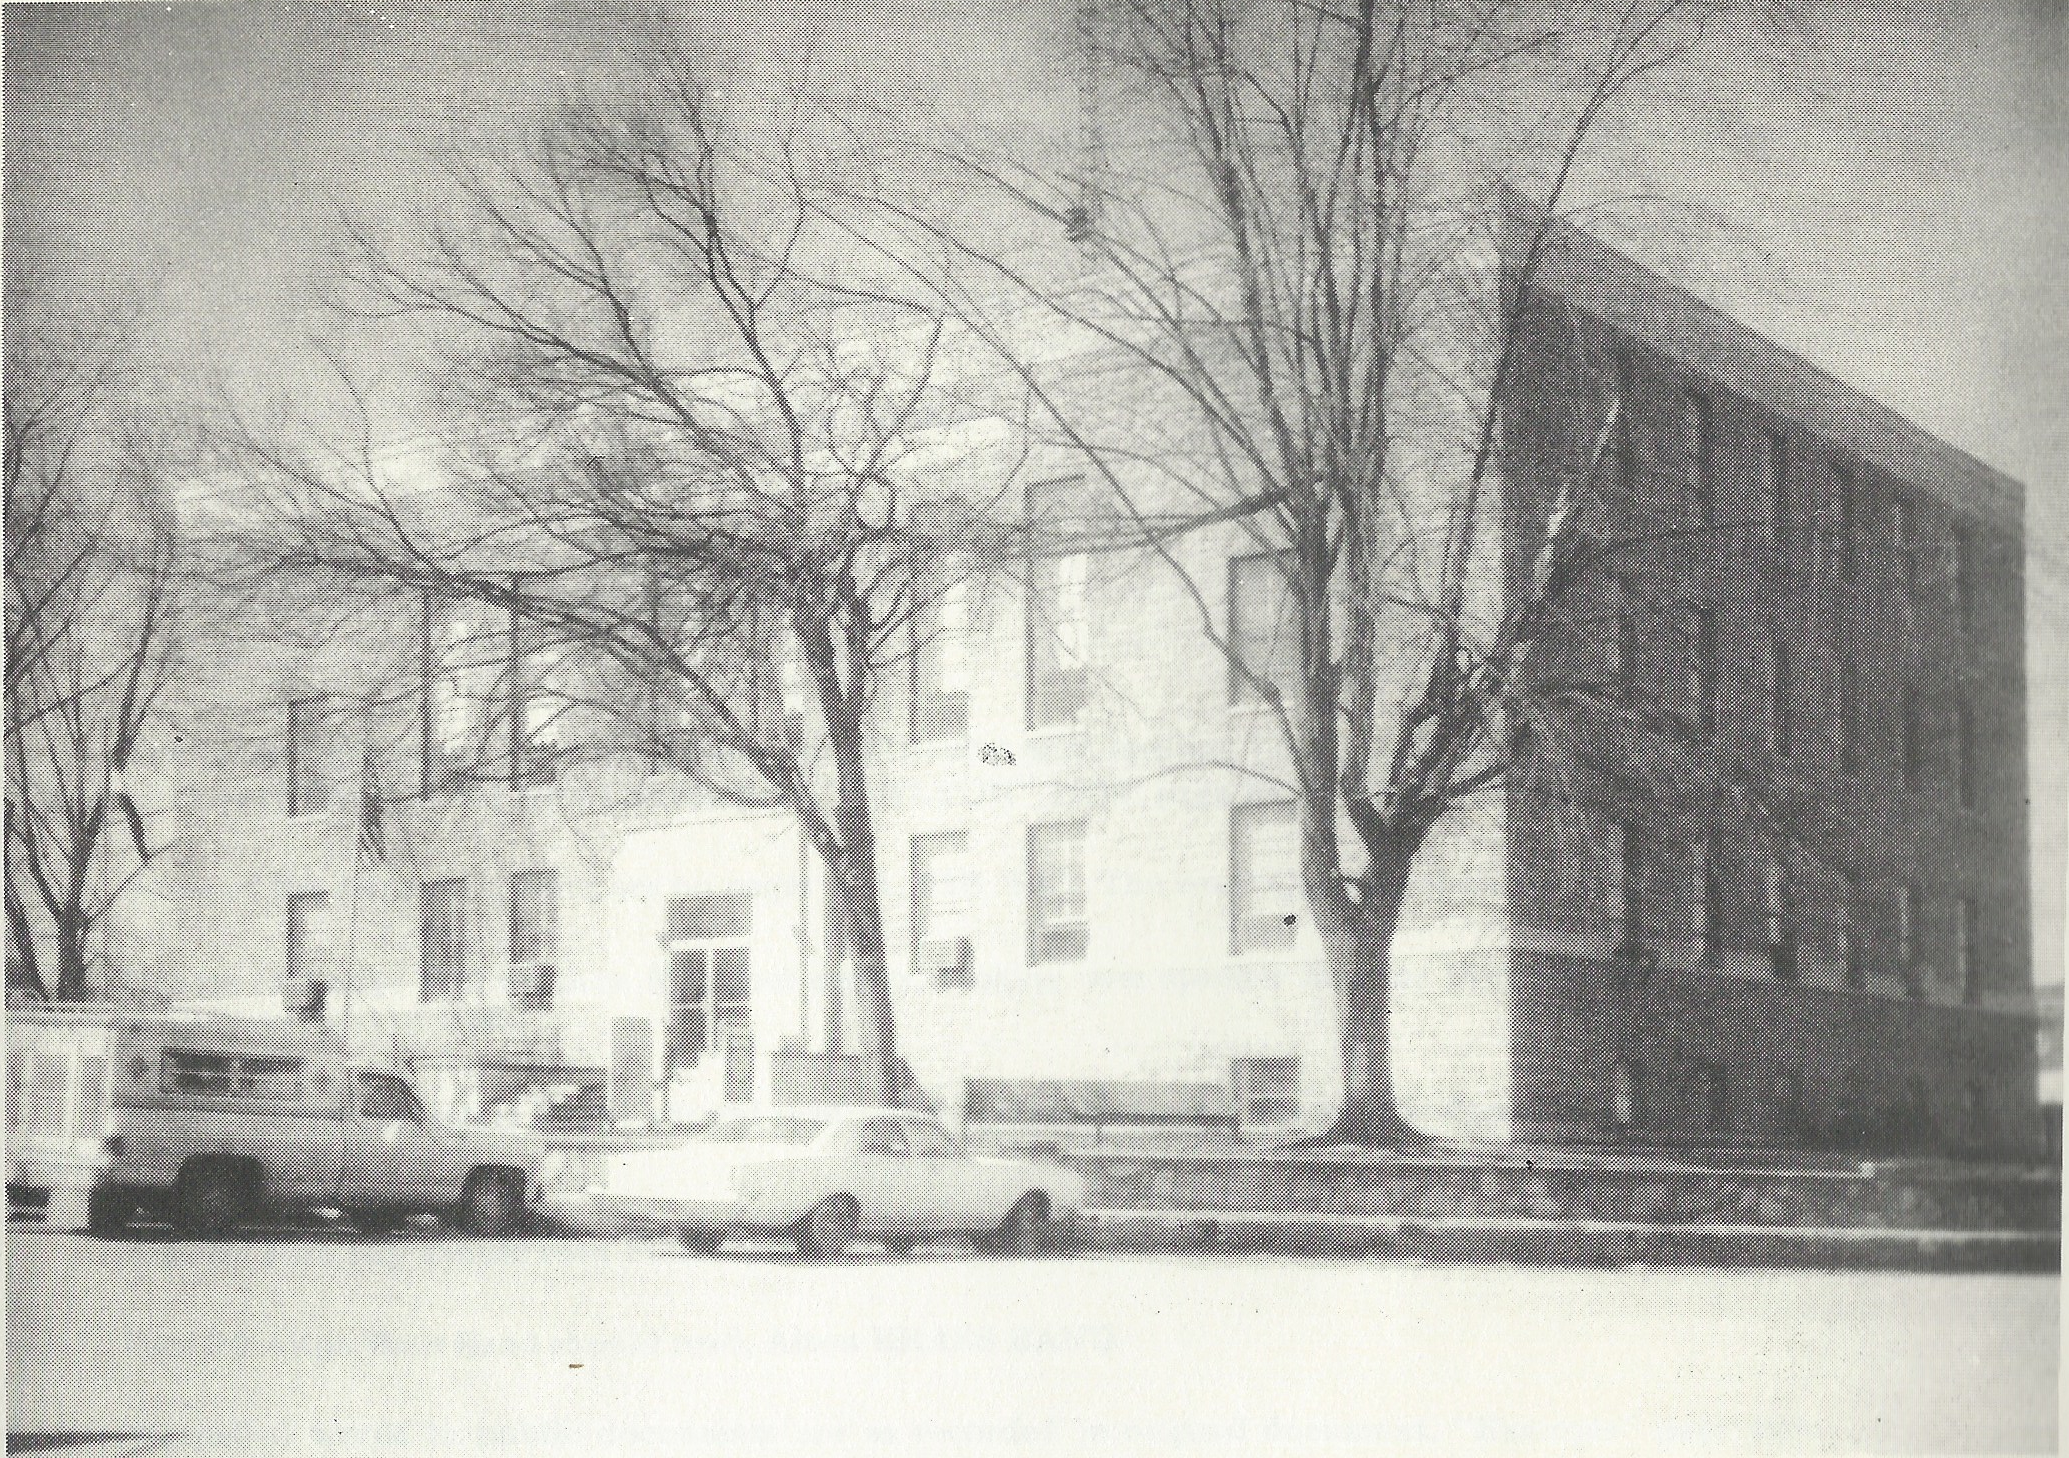 The third Courthouse in 1980